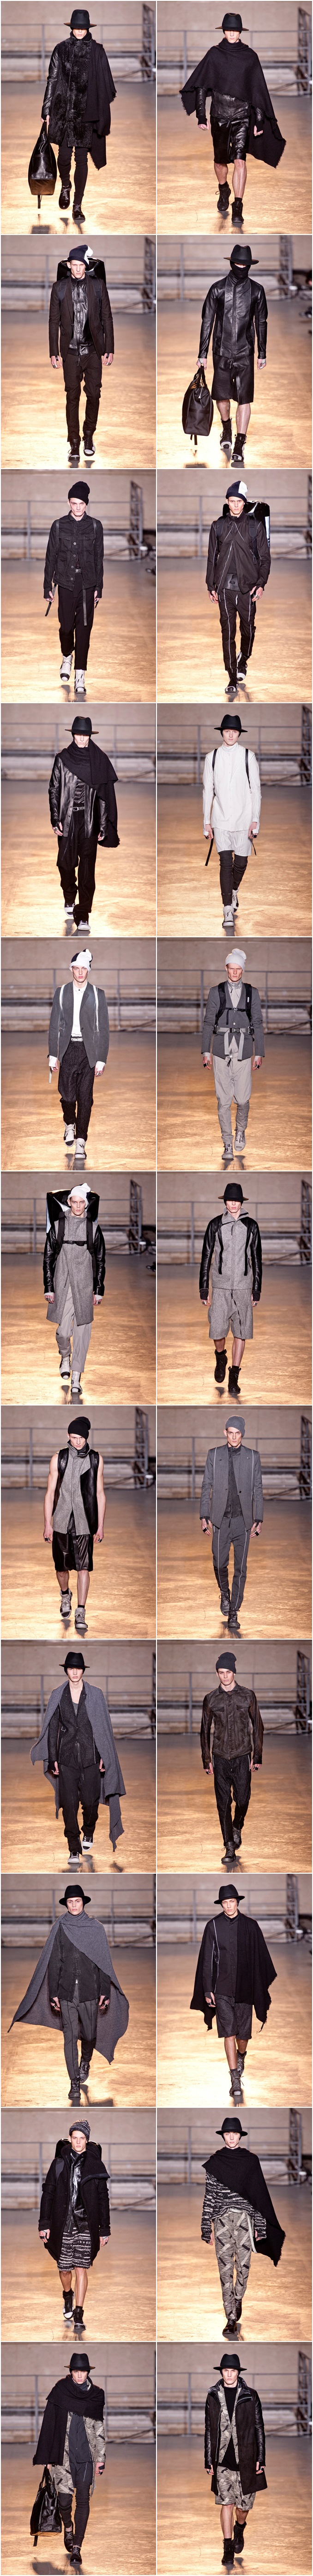 boris-bidjan-saberi-fall-winter-2014-fashion4addicts.co,